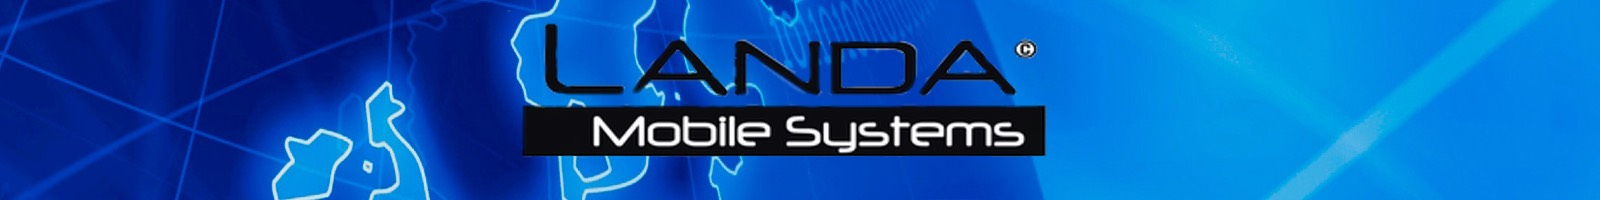 Landa Mobile Systems LLC pagelmslogobanner LMS PS 20 GIN POLE